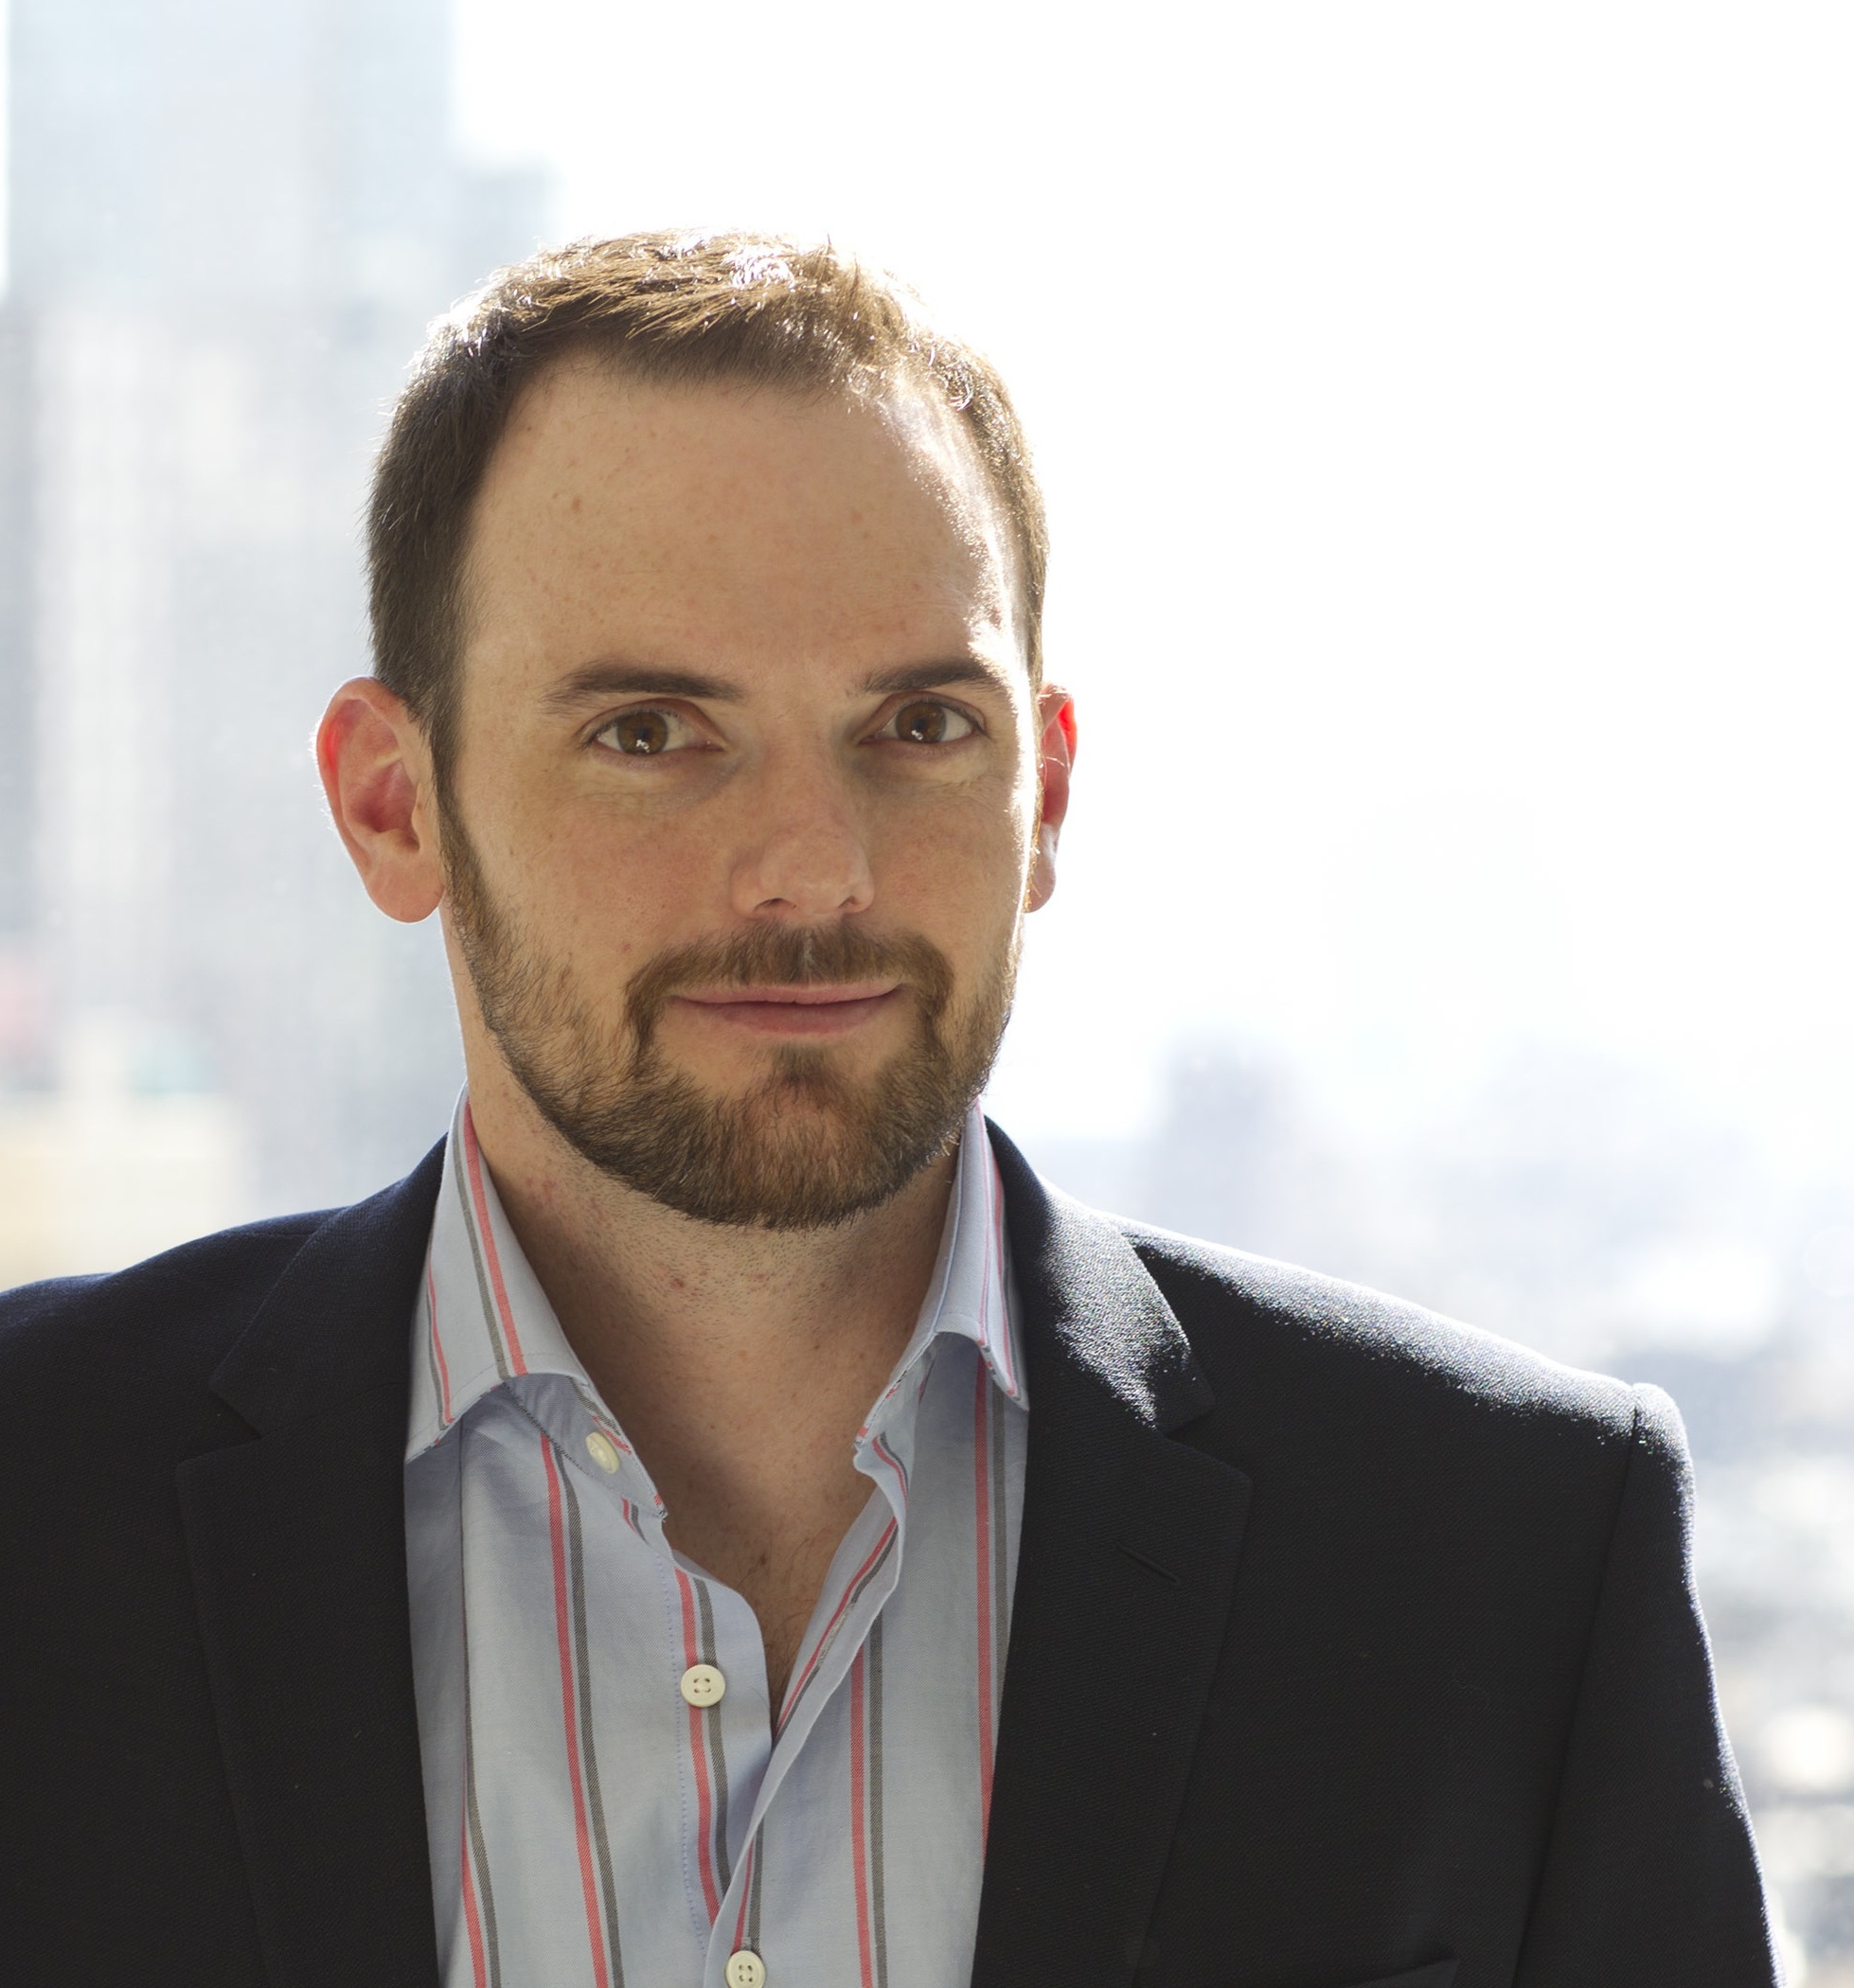 SocialVibe Appoints Co-Founder Joe Marchese as CEO. Marchese Returns to His Roots to Lead SocialVibe to the Next Phase. (Photo: Business Wire)